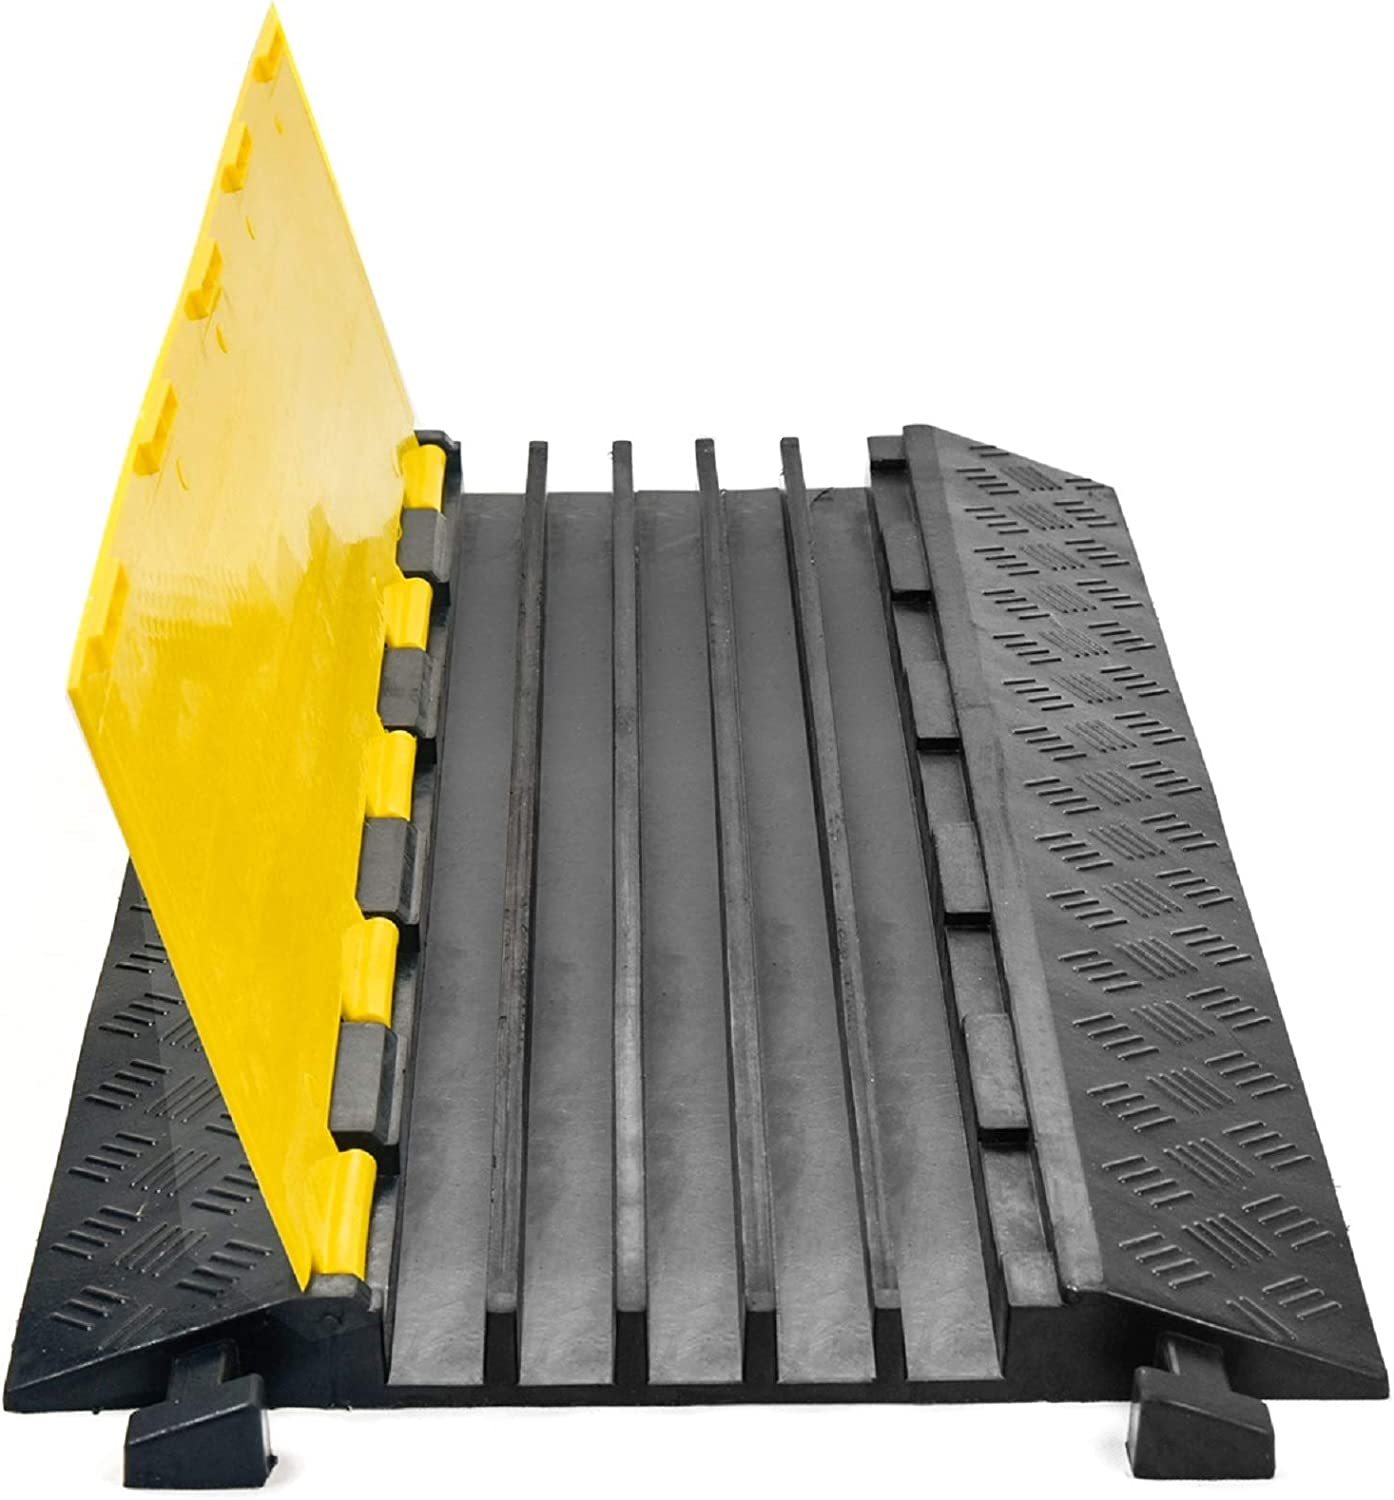 Scinotec Rubber Cable Protector Ramps 1 Pack of 5 Channel Heavy Duty Wire Cord Ramps 18000lbs Load Capacity Traffic Speed Bumps for Asphalt Concrete Gravel Driveway